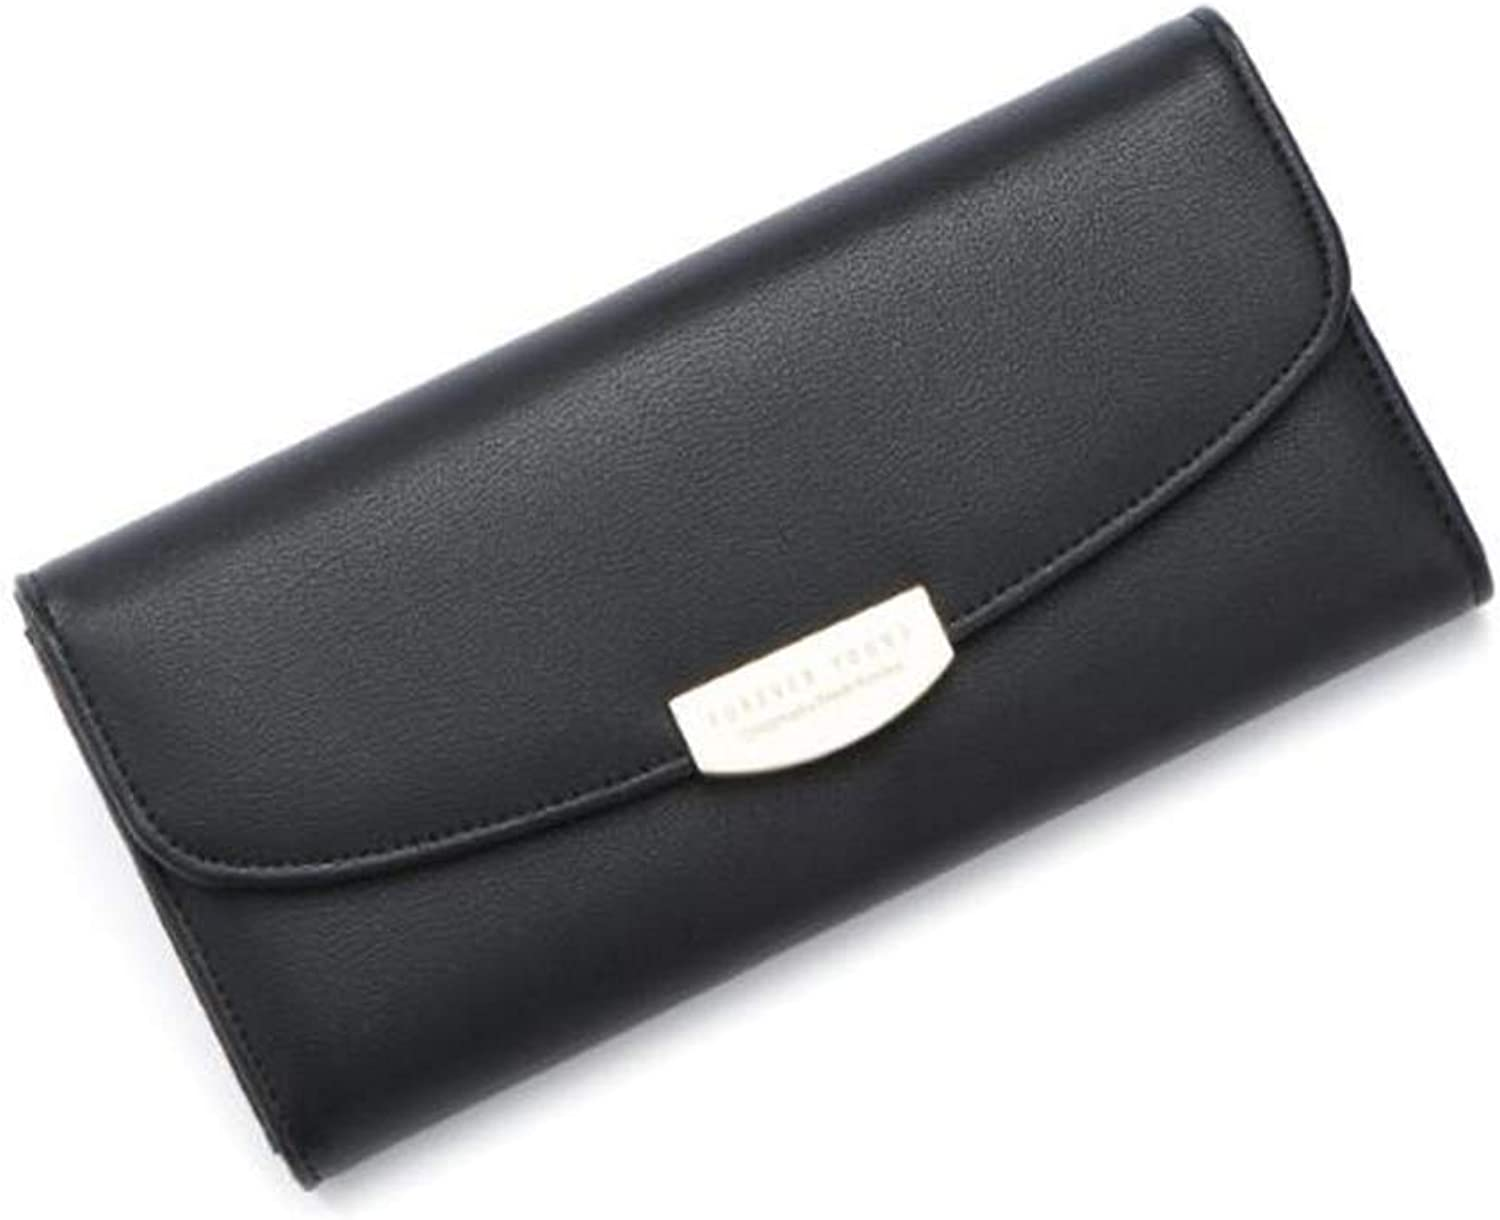 Ladies Handbag Tri-fold Super-Popular Women's Commute Long Wallet for School Gift Ideal Wallet (color   Black)